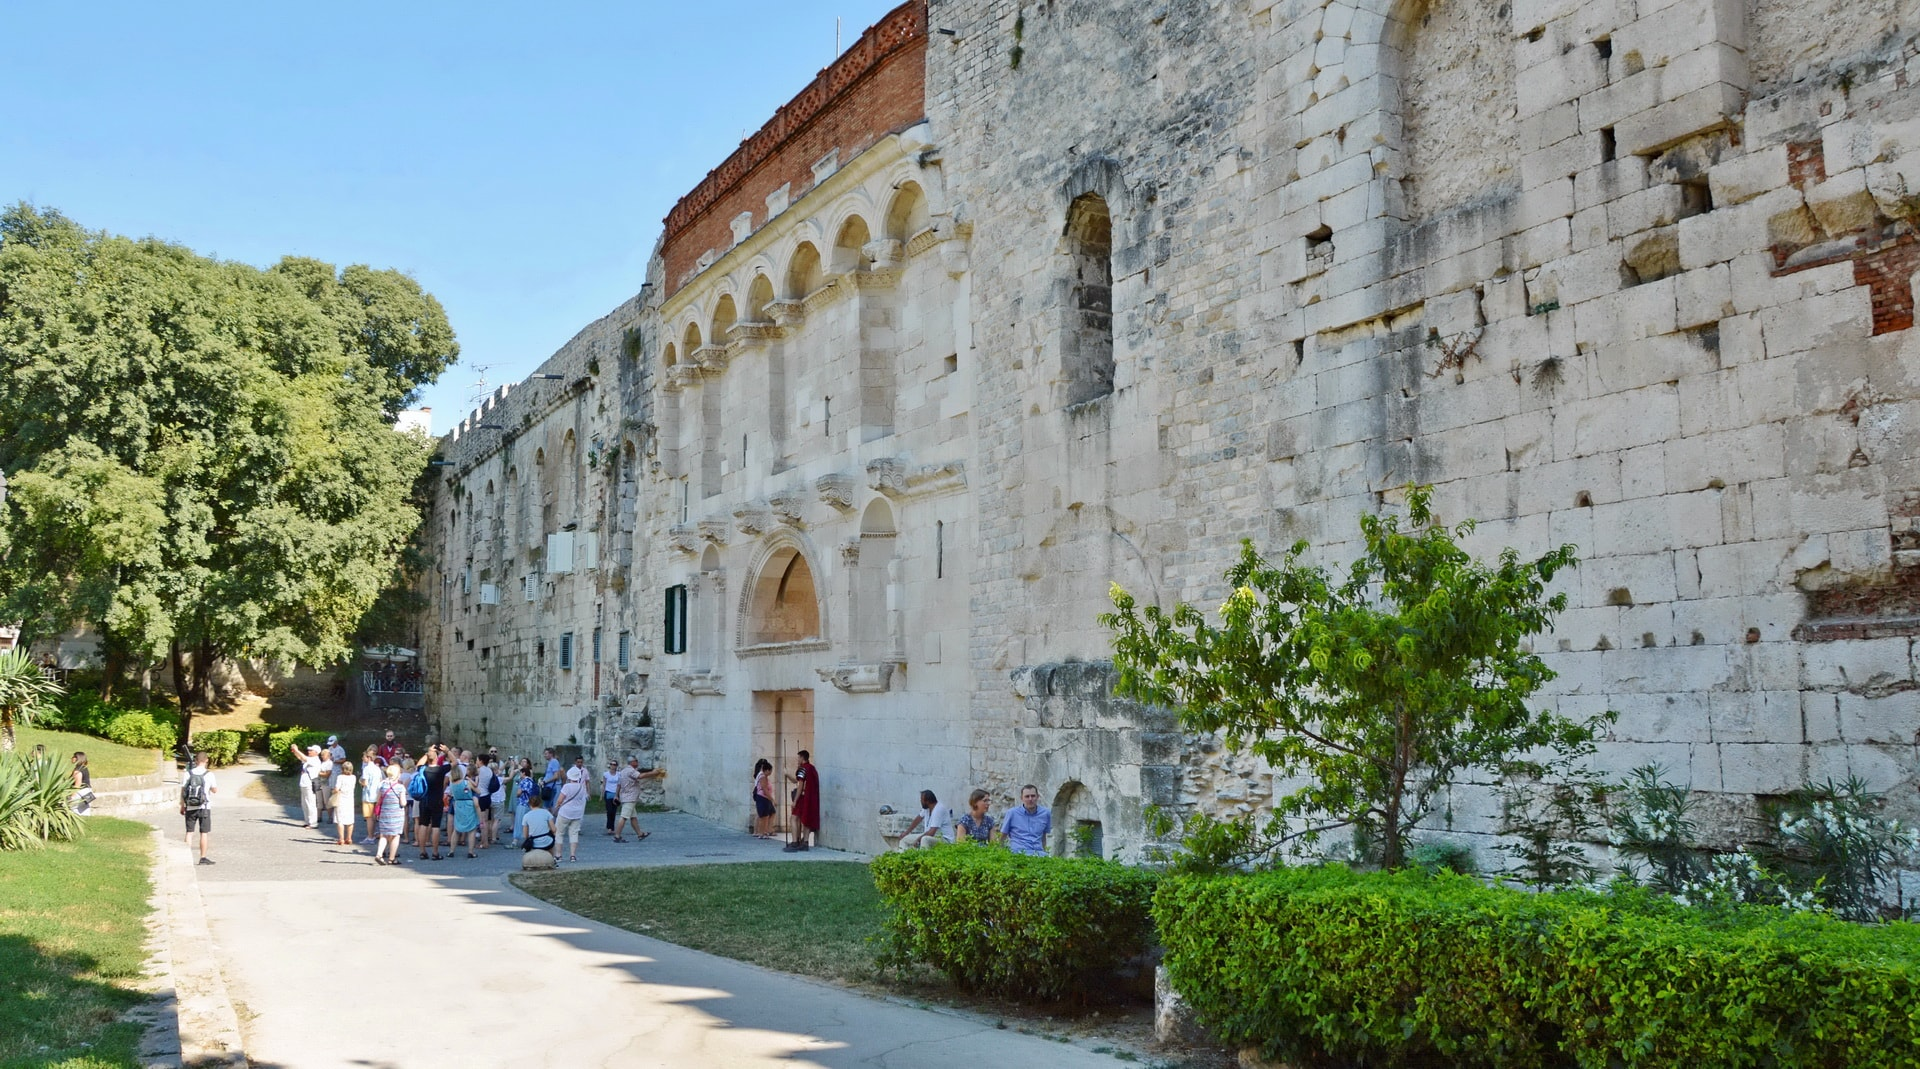 City Wall surrounding the historical centre of Split